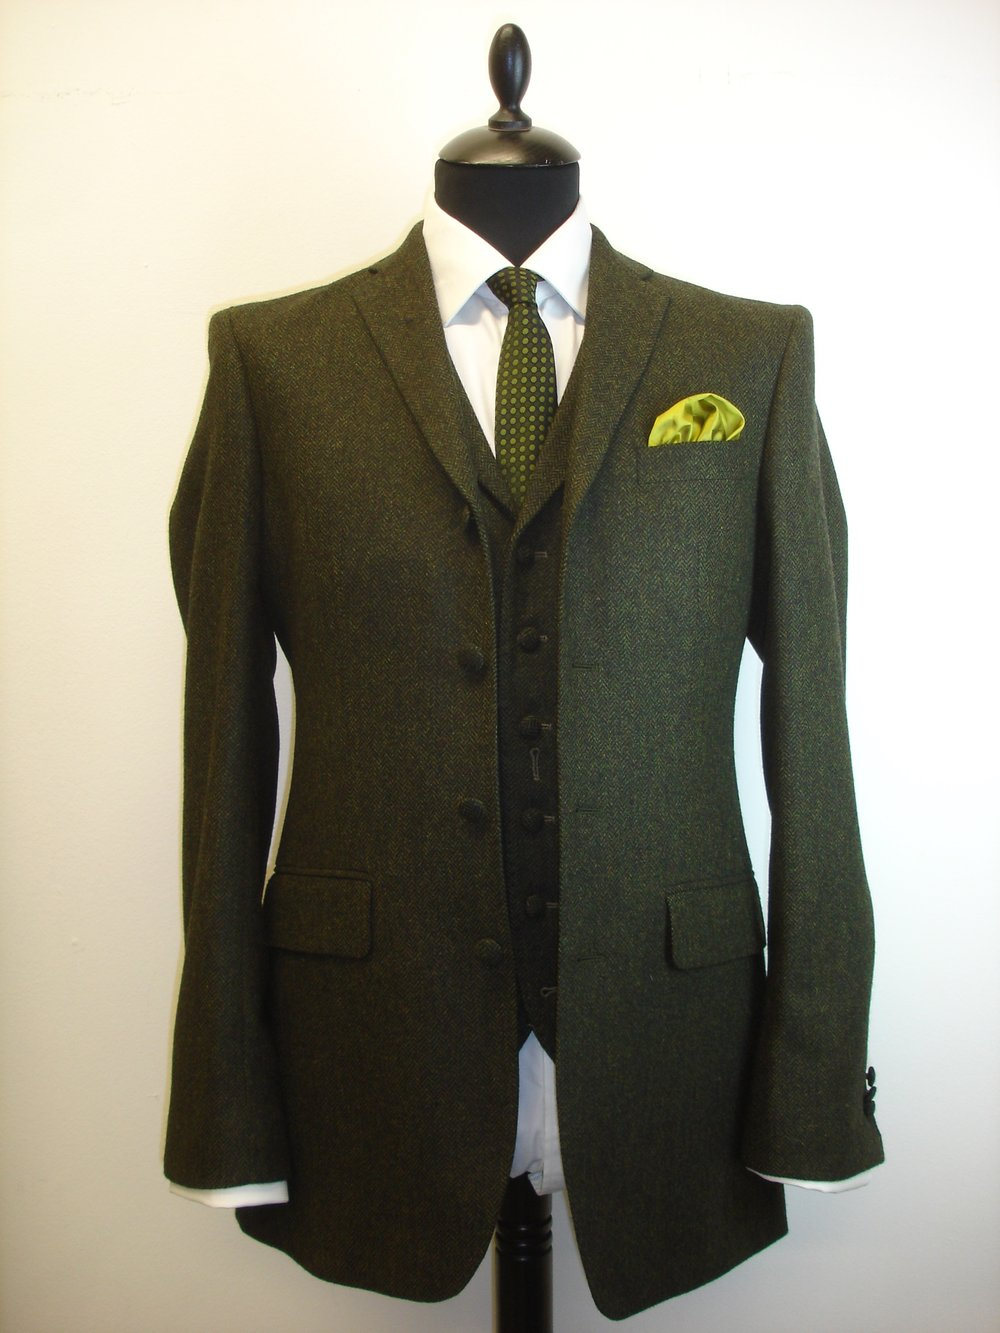 3 piece green lambswool herringbone tweed suit (5).JPG